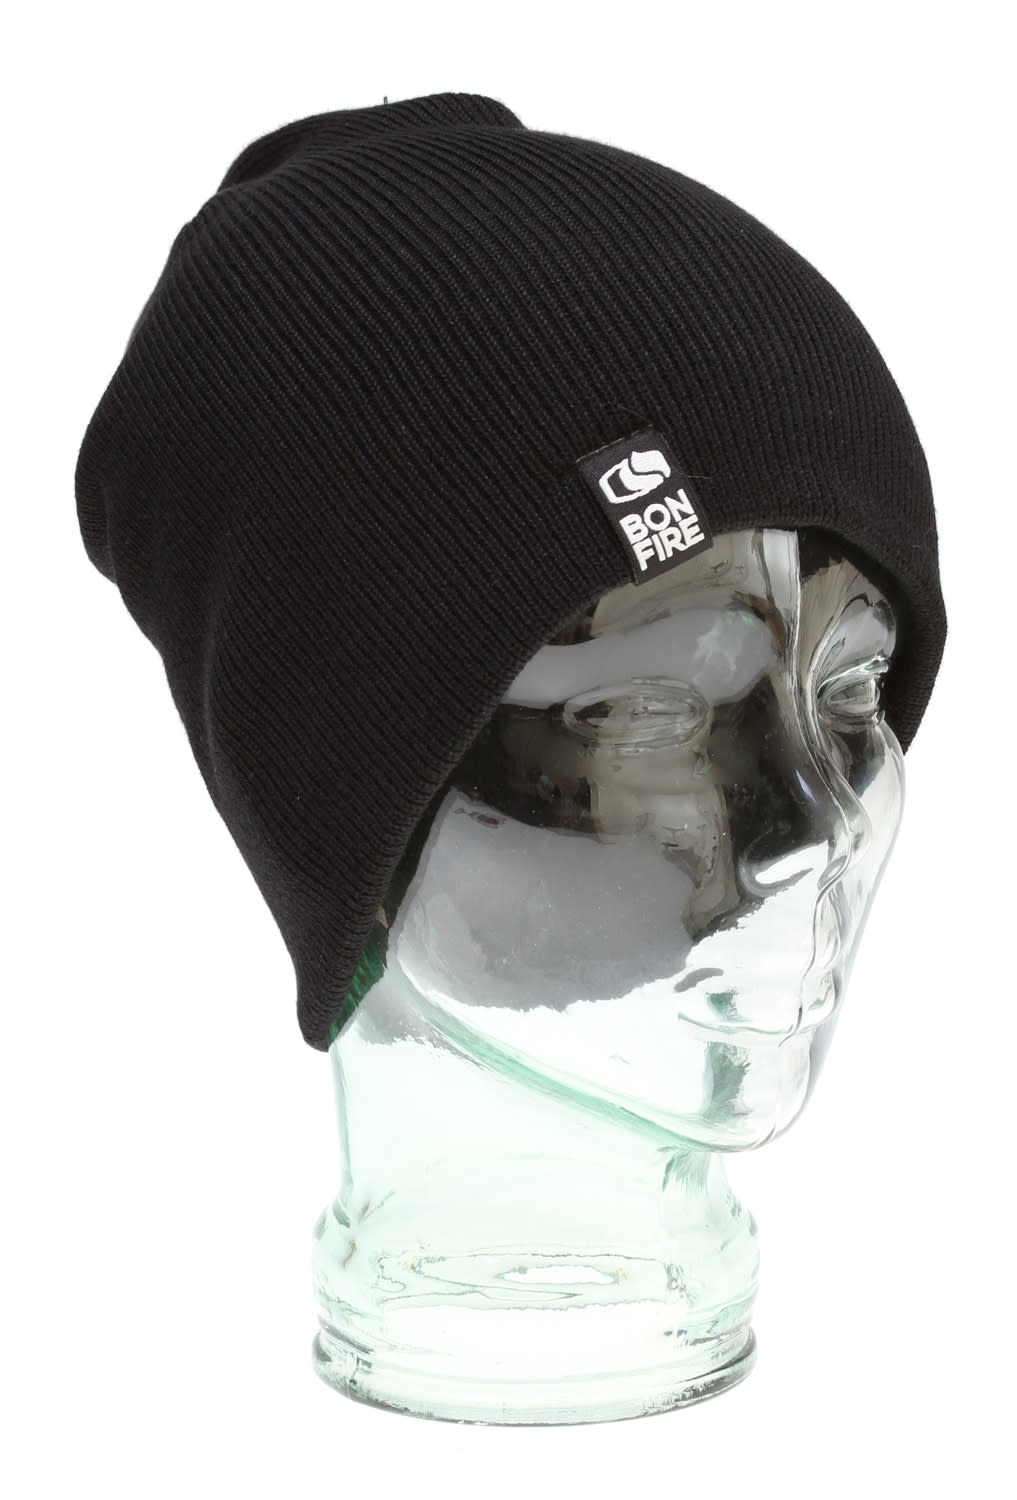 Shop for Bonfire Helmet Beanie Black - Men's